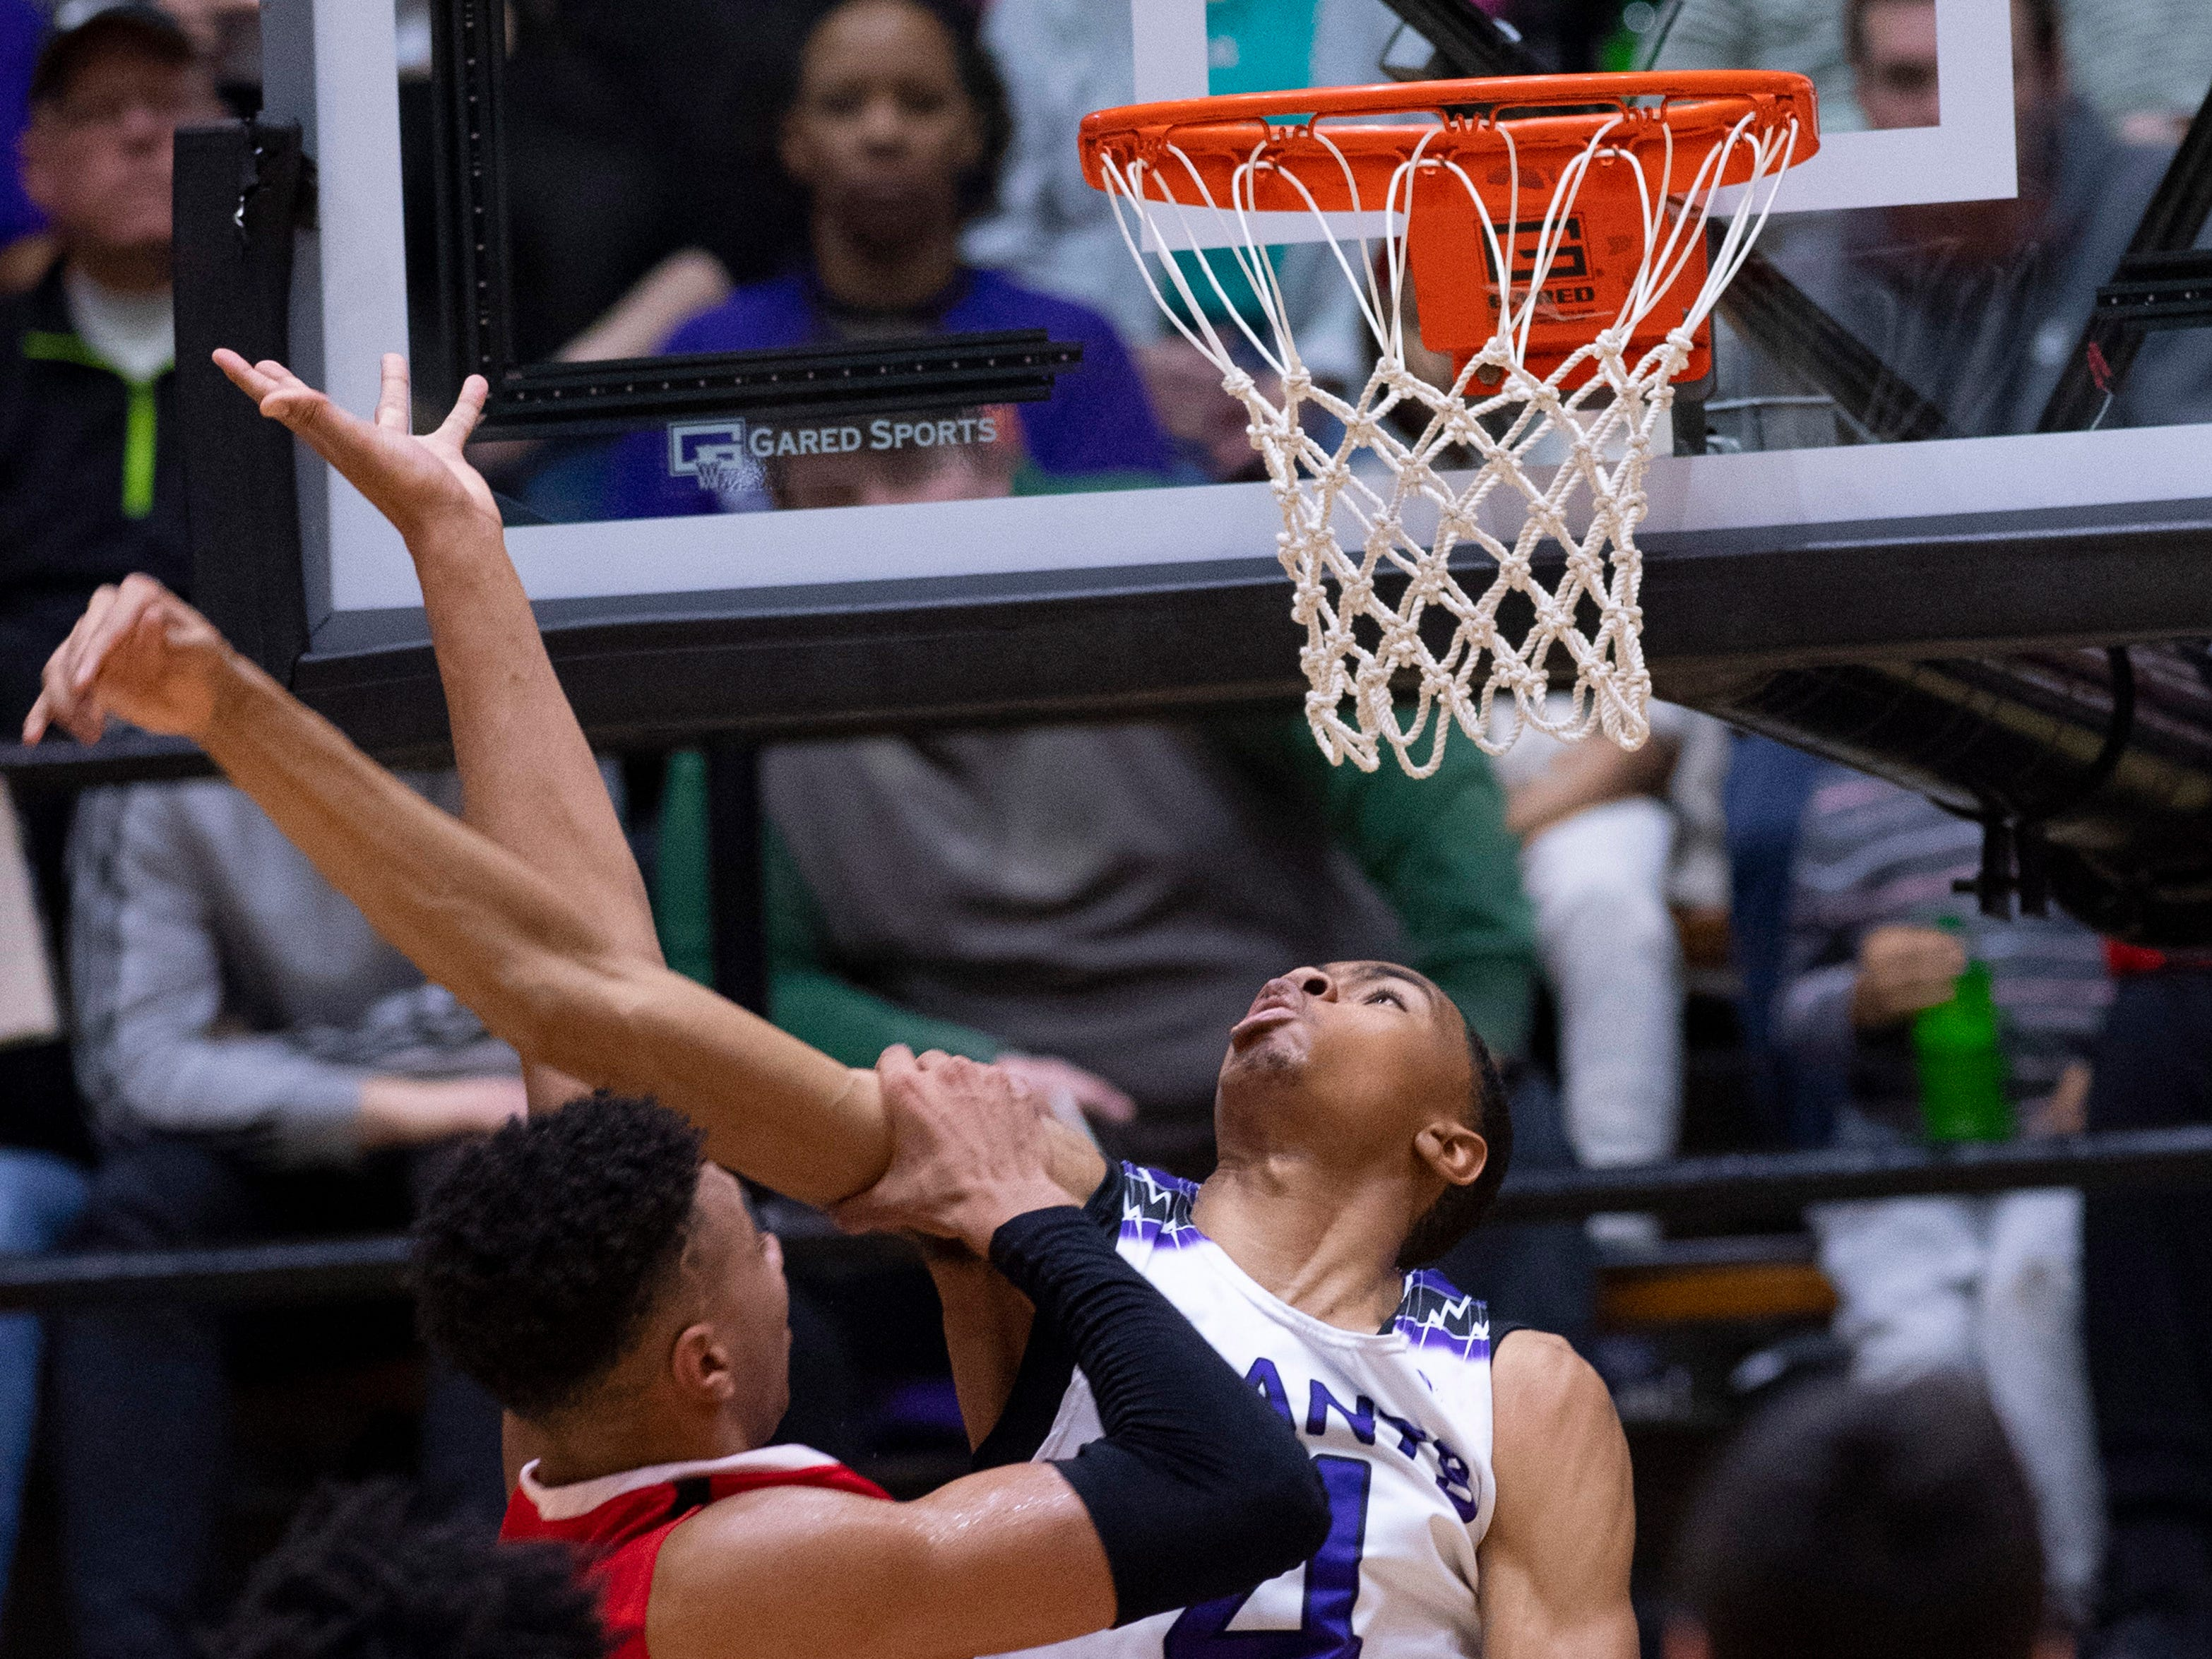 Center Grove's Trayce Jackson-Davis (23) grabs the arm of Ben Davis's Josh Shannon (4) after having his shot blocked during the 4A Boys Indiana Semi-State Basketball Tournament at the Hatchet House in Washington, Ind., Saturday afternoon. Shannon was called for the foul to his coach's dismay.